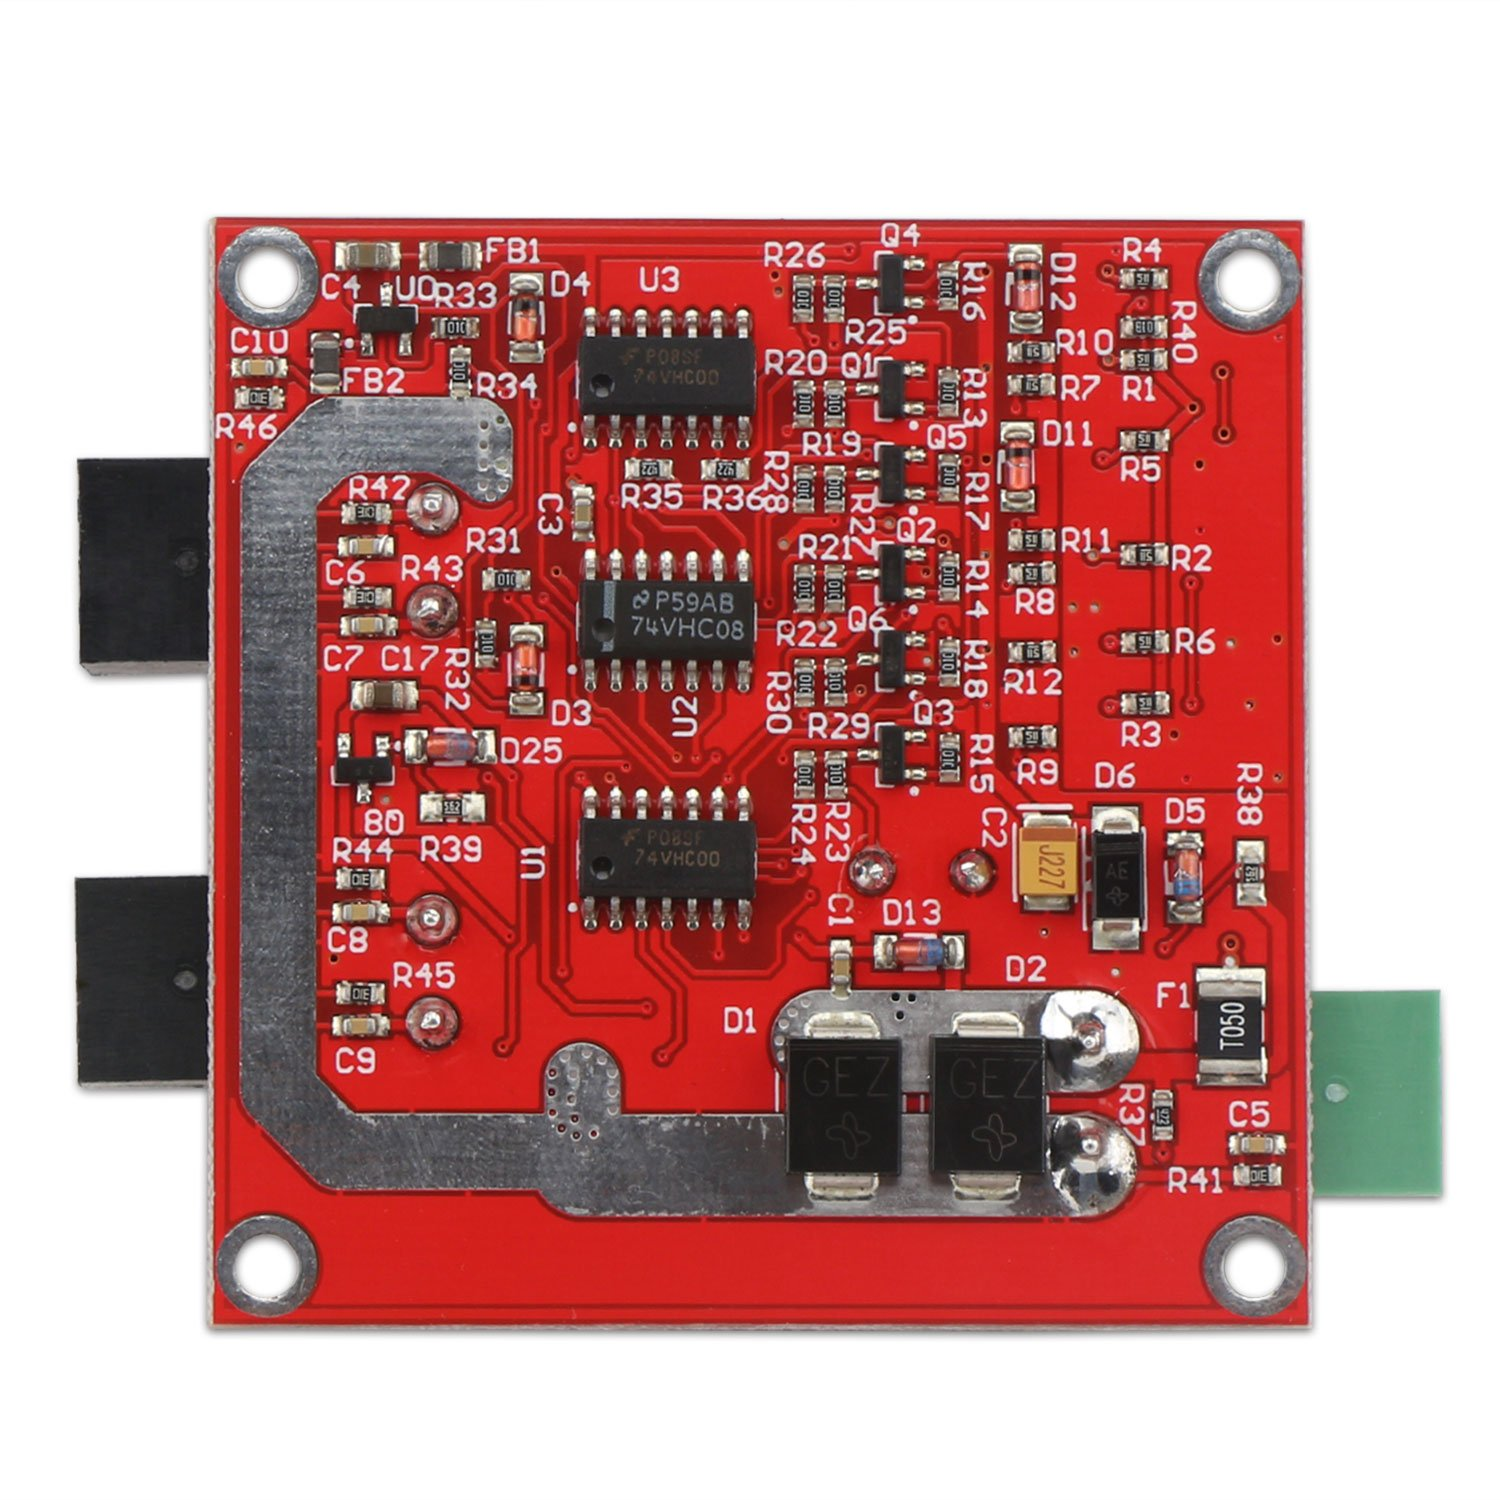 Dc Motor Driver Drok L298 Dual H Bridge Speed Controller L298n Diagram Along With Circuit Applications 65v 27v 7a Pwm Regulator Board 12v 24v Electric Control Module Industrial